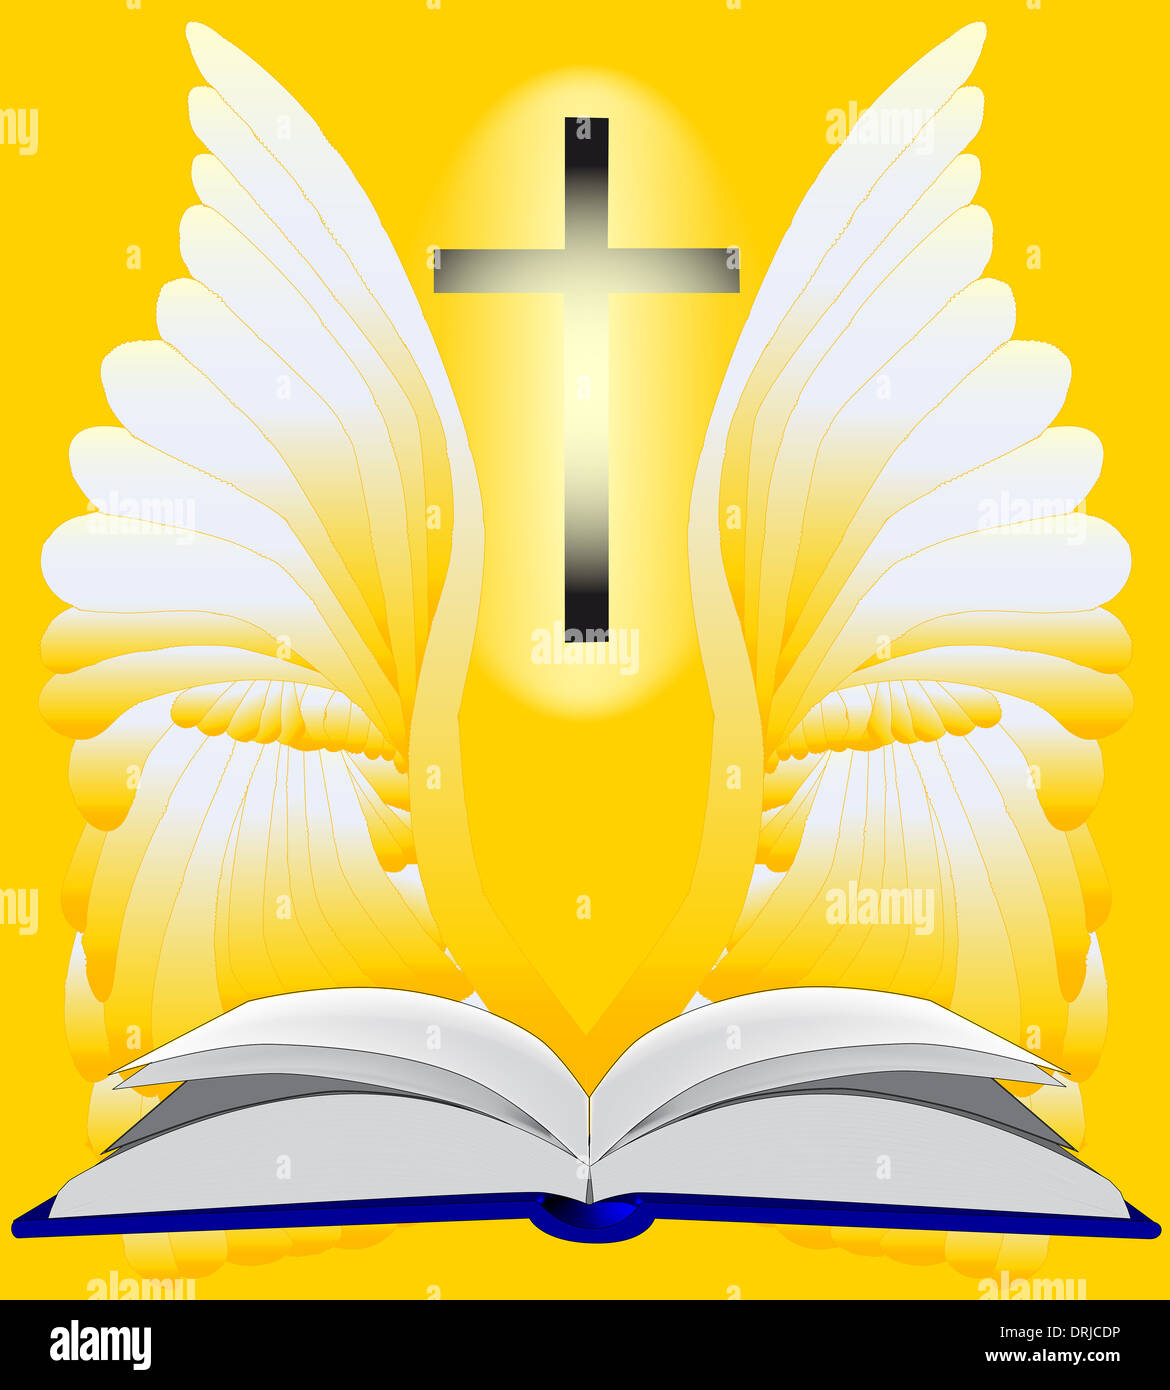 Image result for open bible and angels